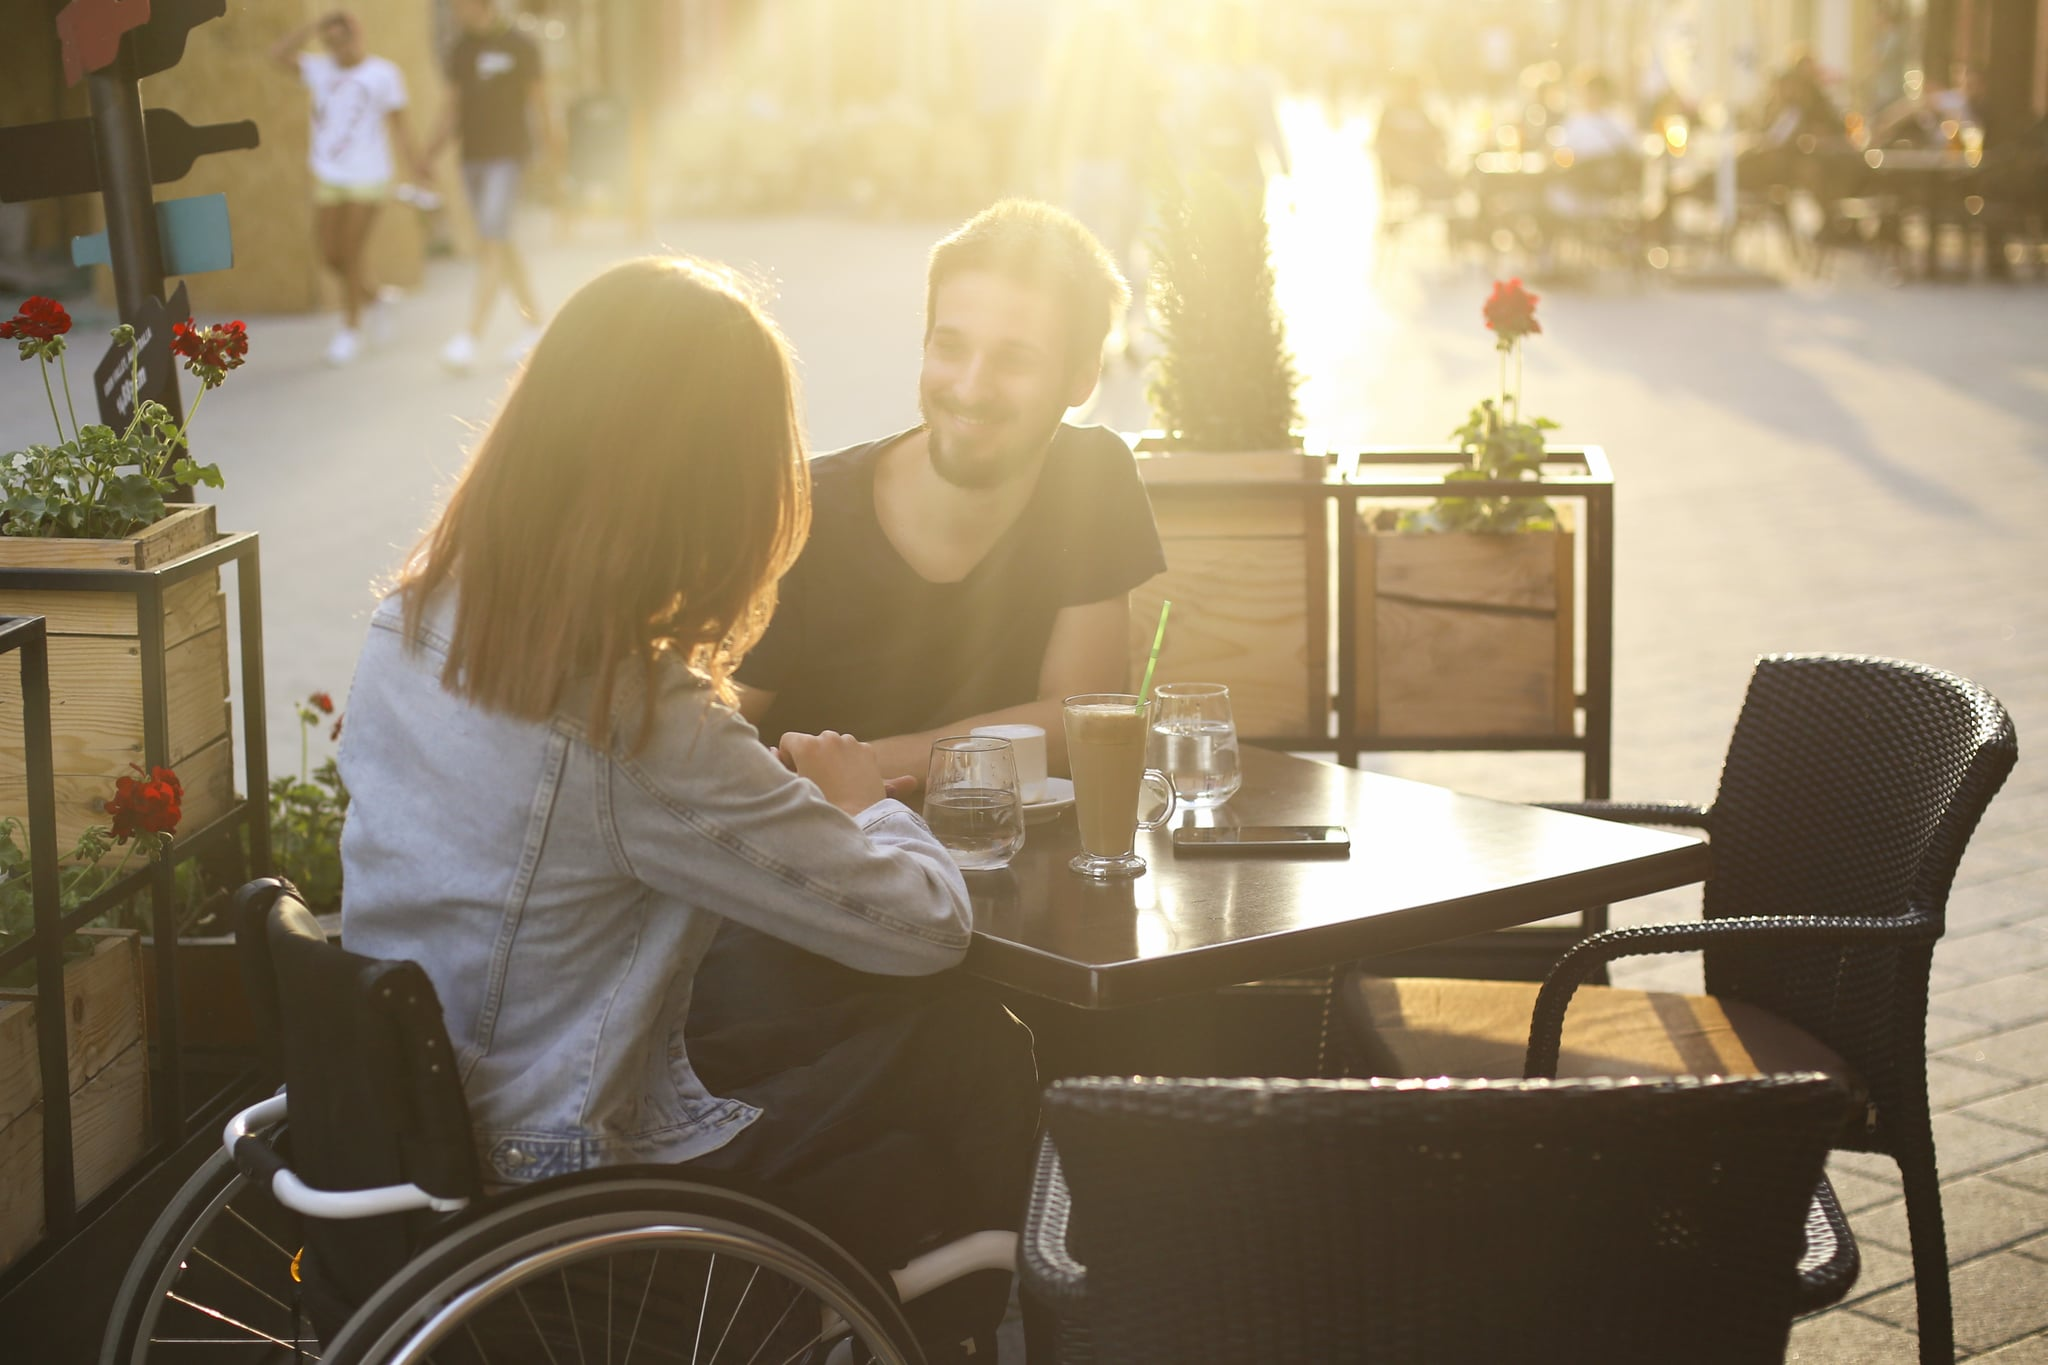 Disabled young woman and her boyfriend in a cafe. Both about 25 years old, Caucasian people.